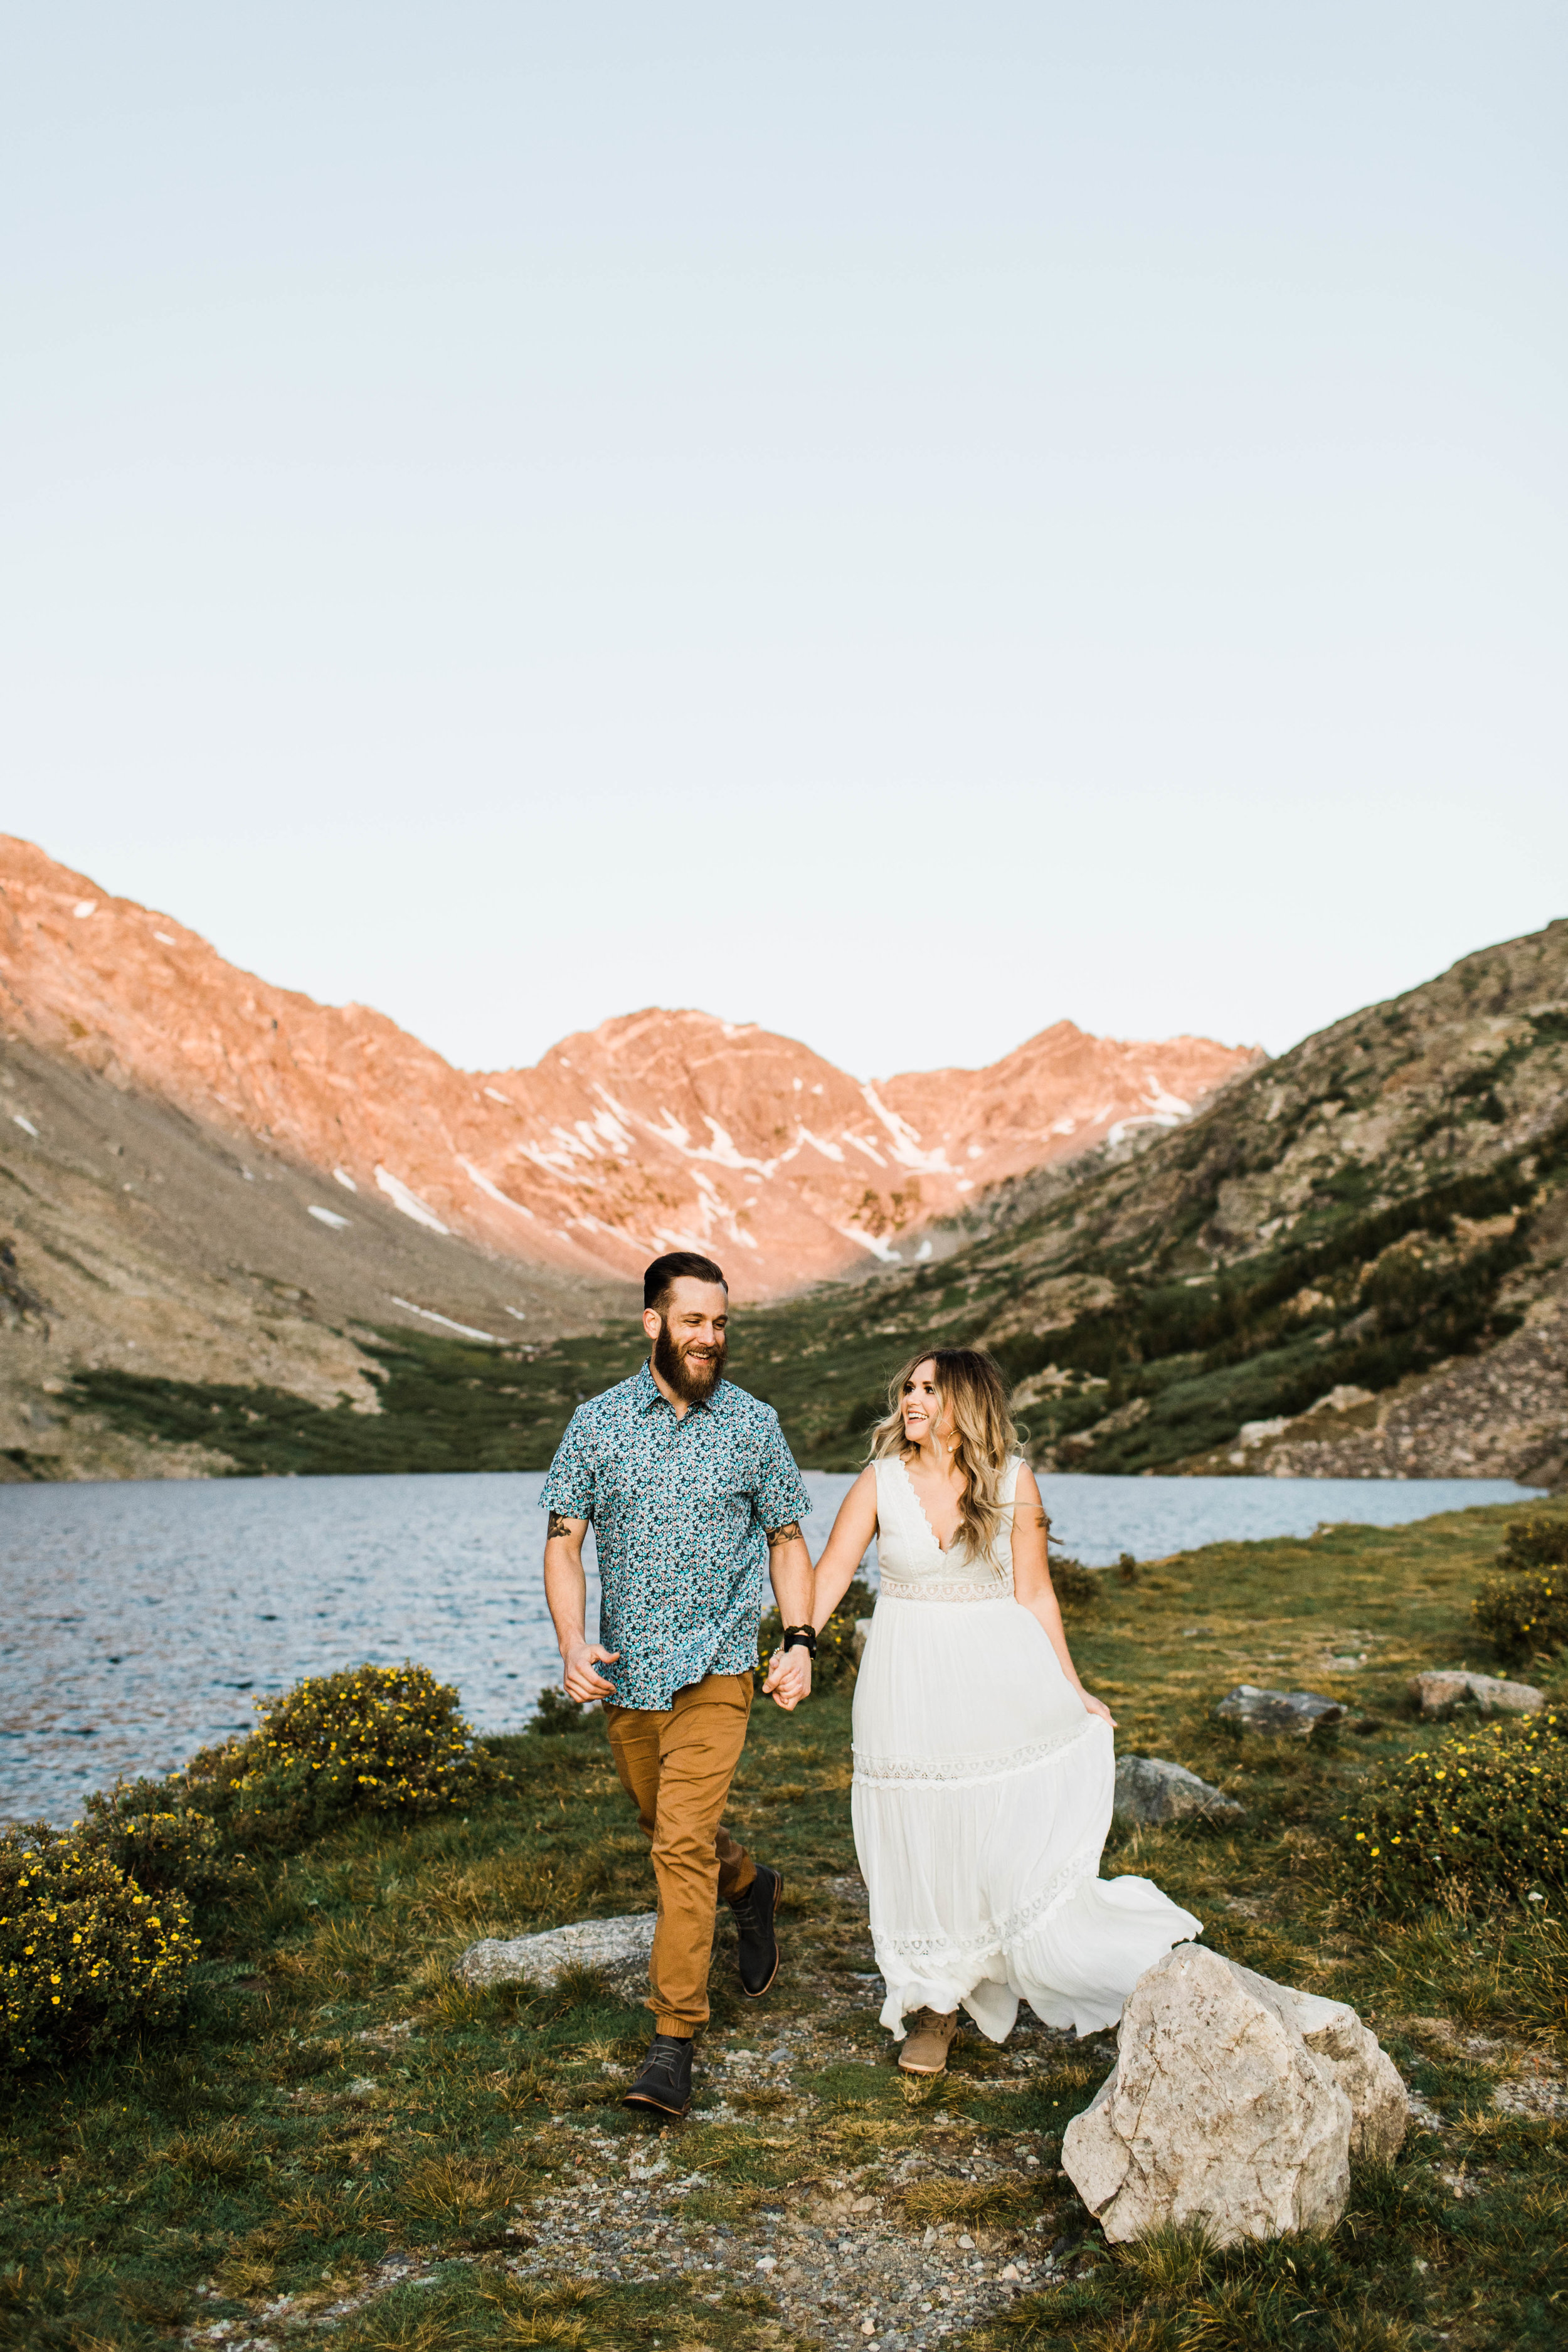 Engaged couple running together in the mountains during their Breckenridge adventure engagement photos at an alpine lake | best Breckenridge Colorado wedding and elopement photographers